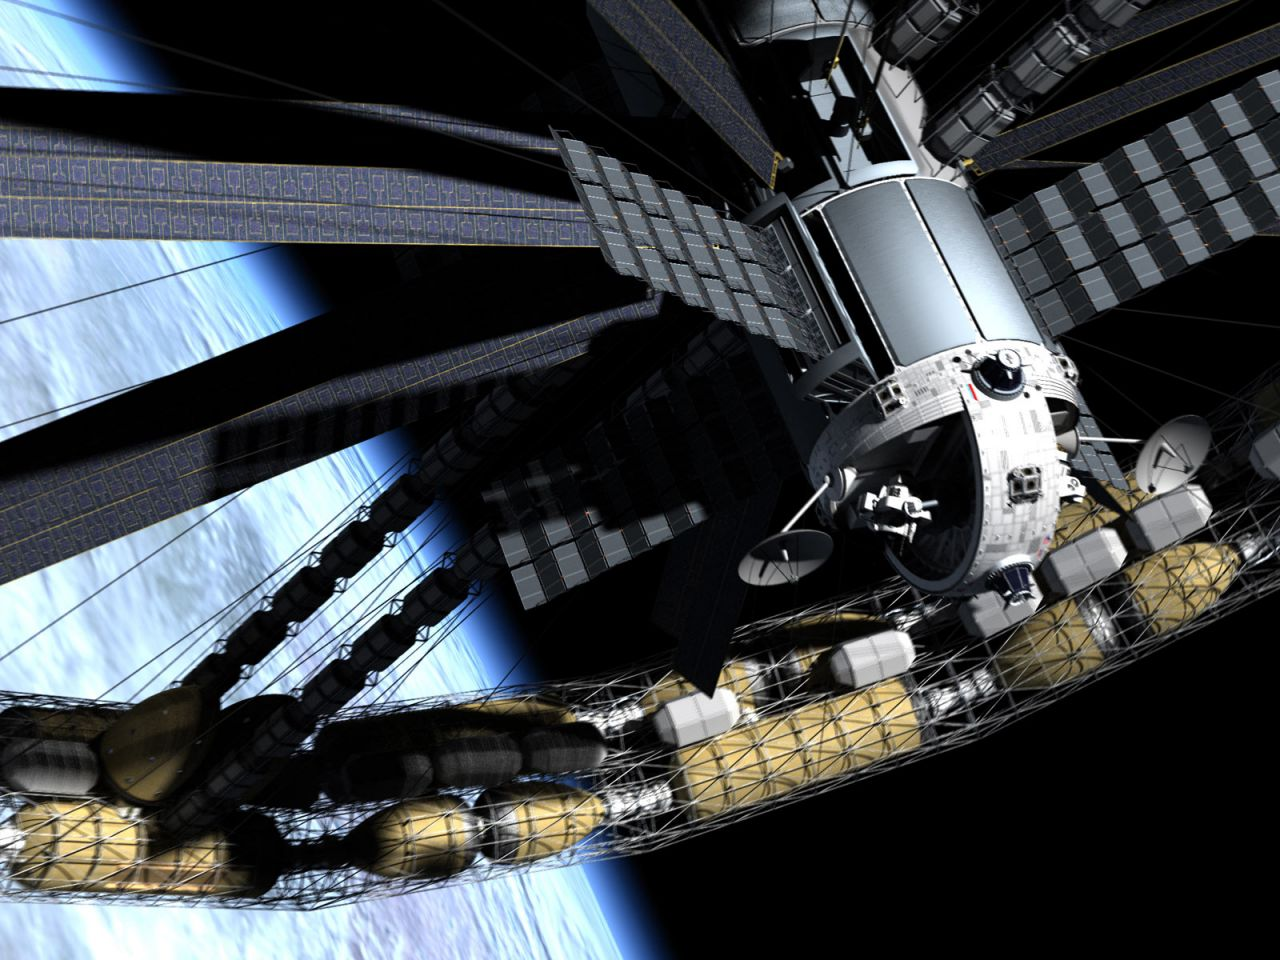 star space station freedom wallpaper - photo #39